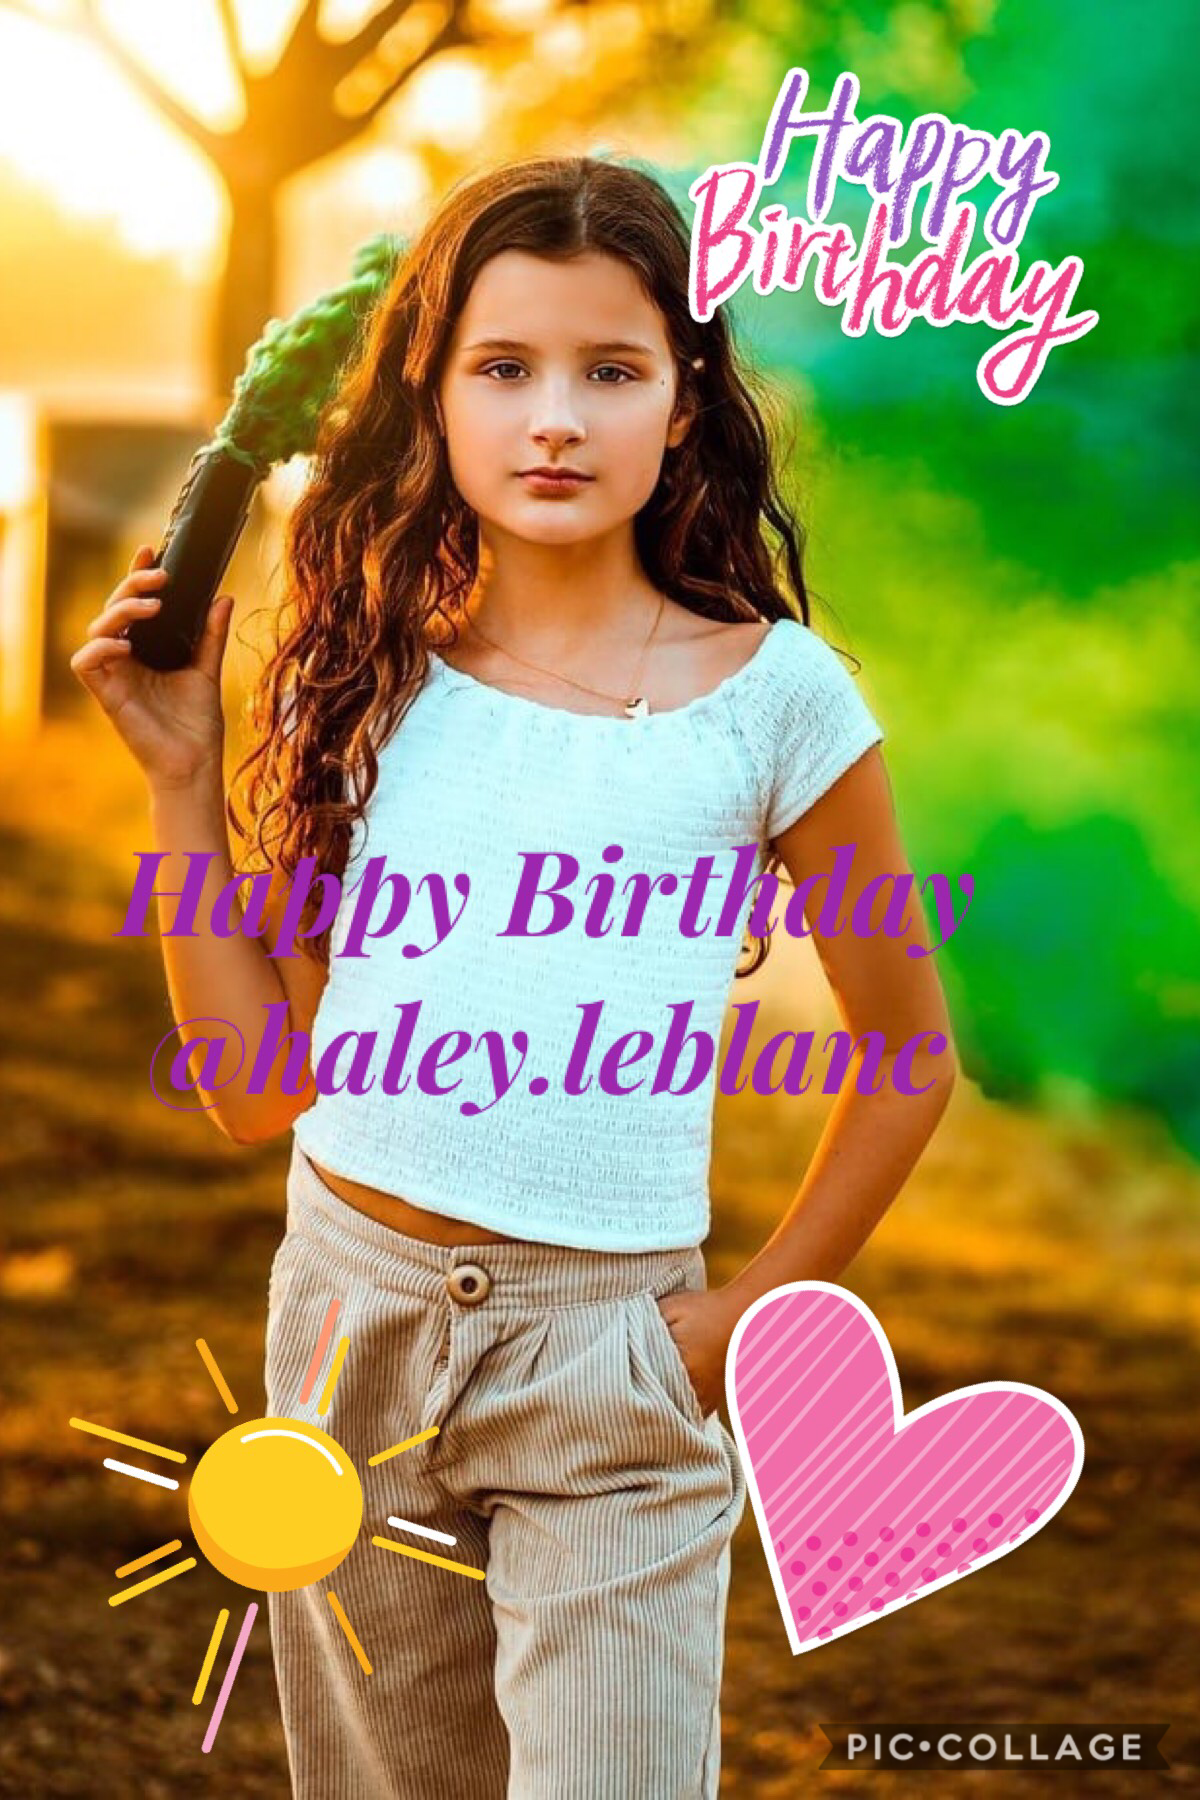 Happy Birthday @haley.leblanc (Instagram user not on PicCollage) make sure to go subscribe to her (Haley LeBlanc) for her Birthday! 🥳